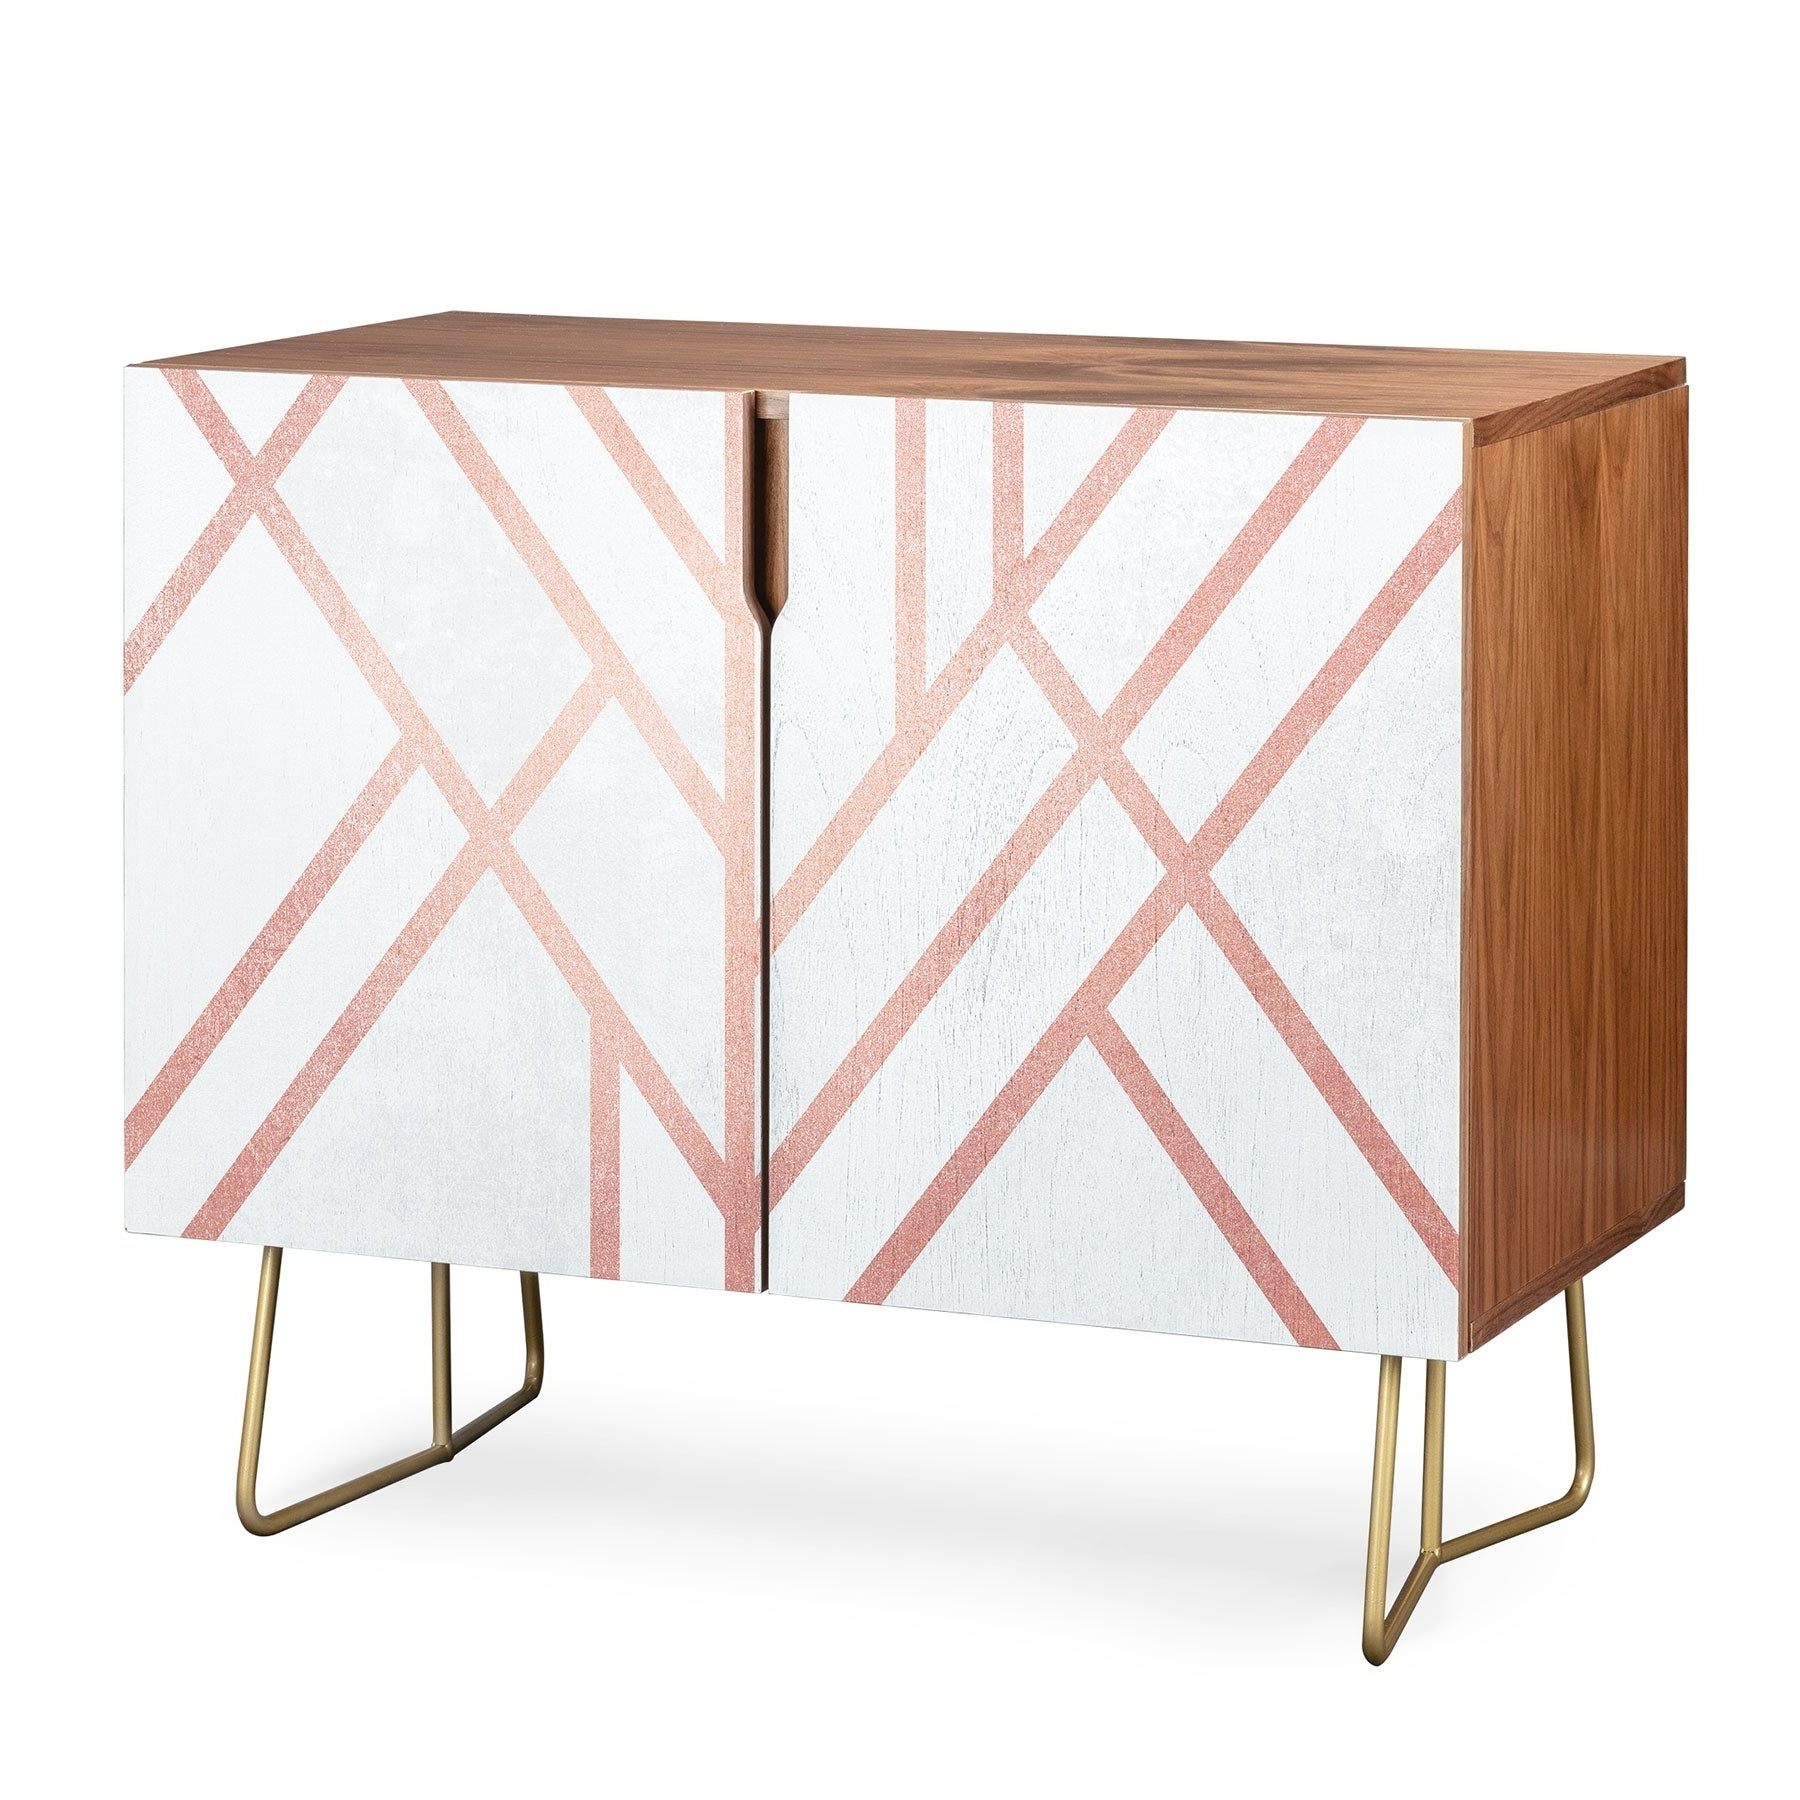 Deny Designs Pink And White Geometric Credenza (birch Or Walnut, 3 Leg Options) For Pink And White Geometric Buffets (View 8 of 20)